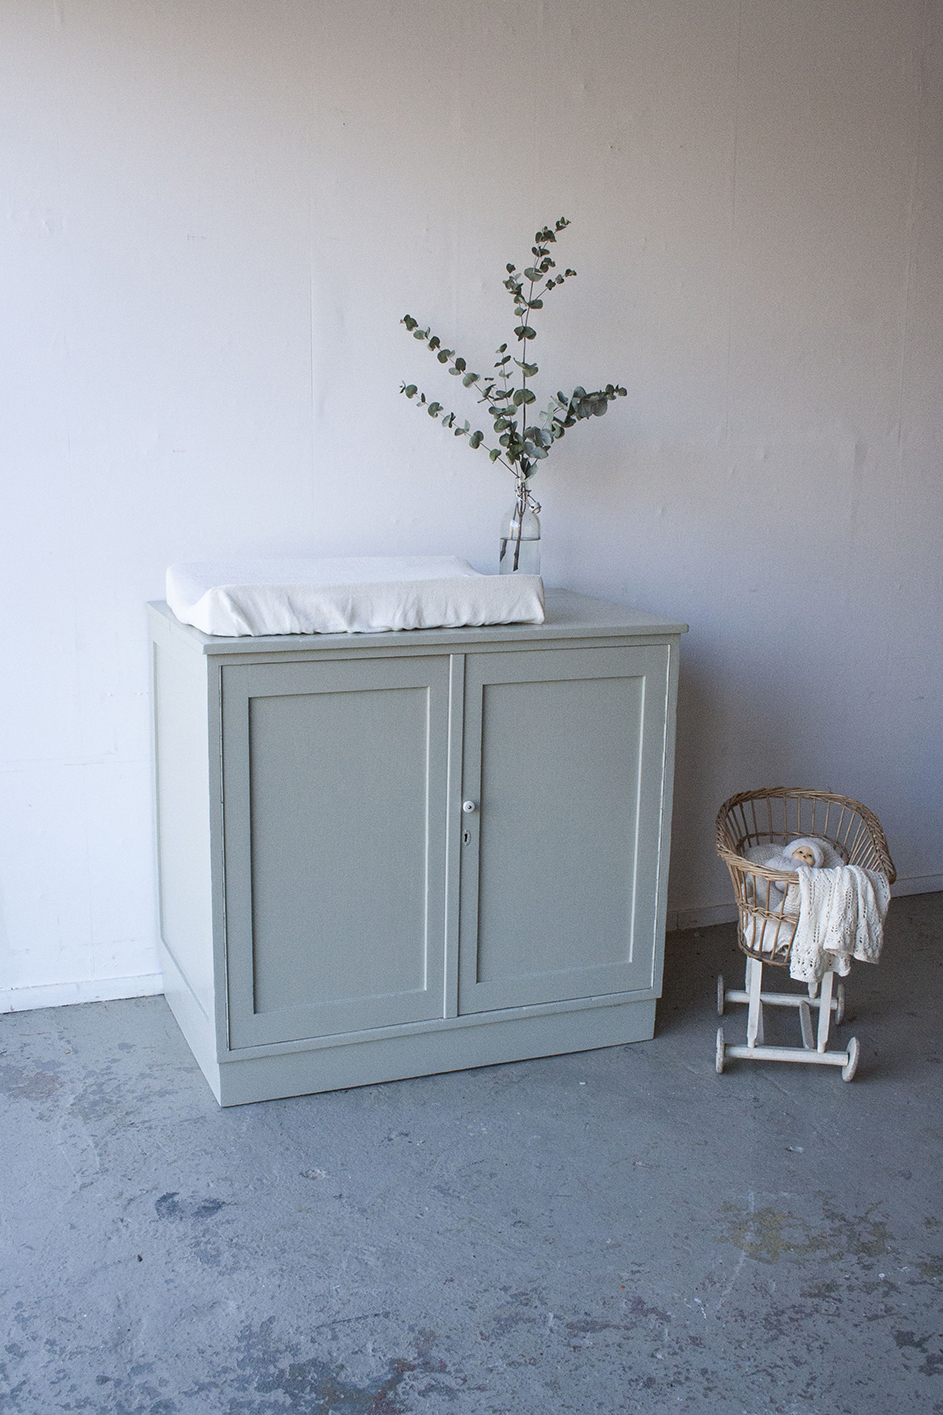 French grey blokcommode - Firmazoethout.jpg